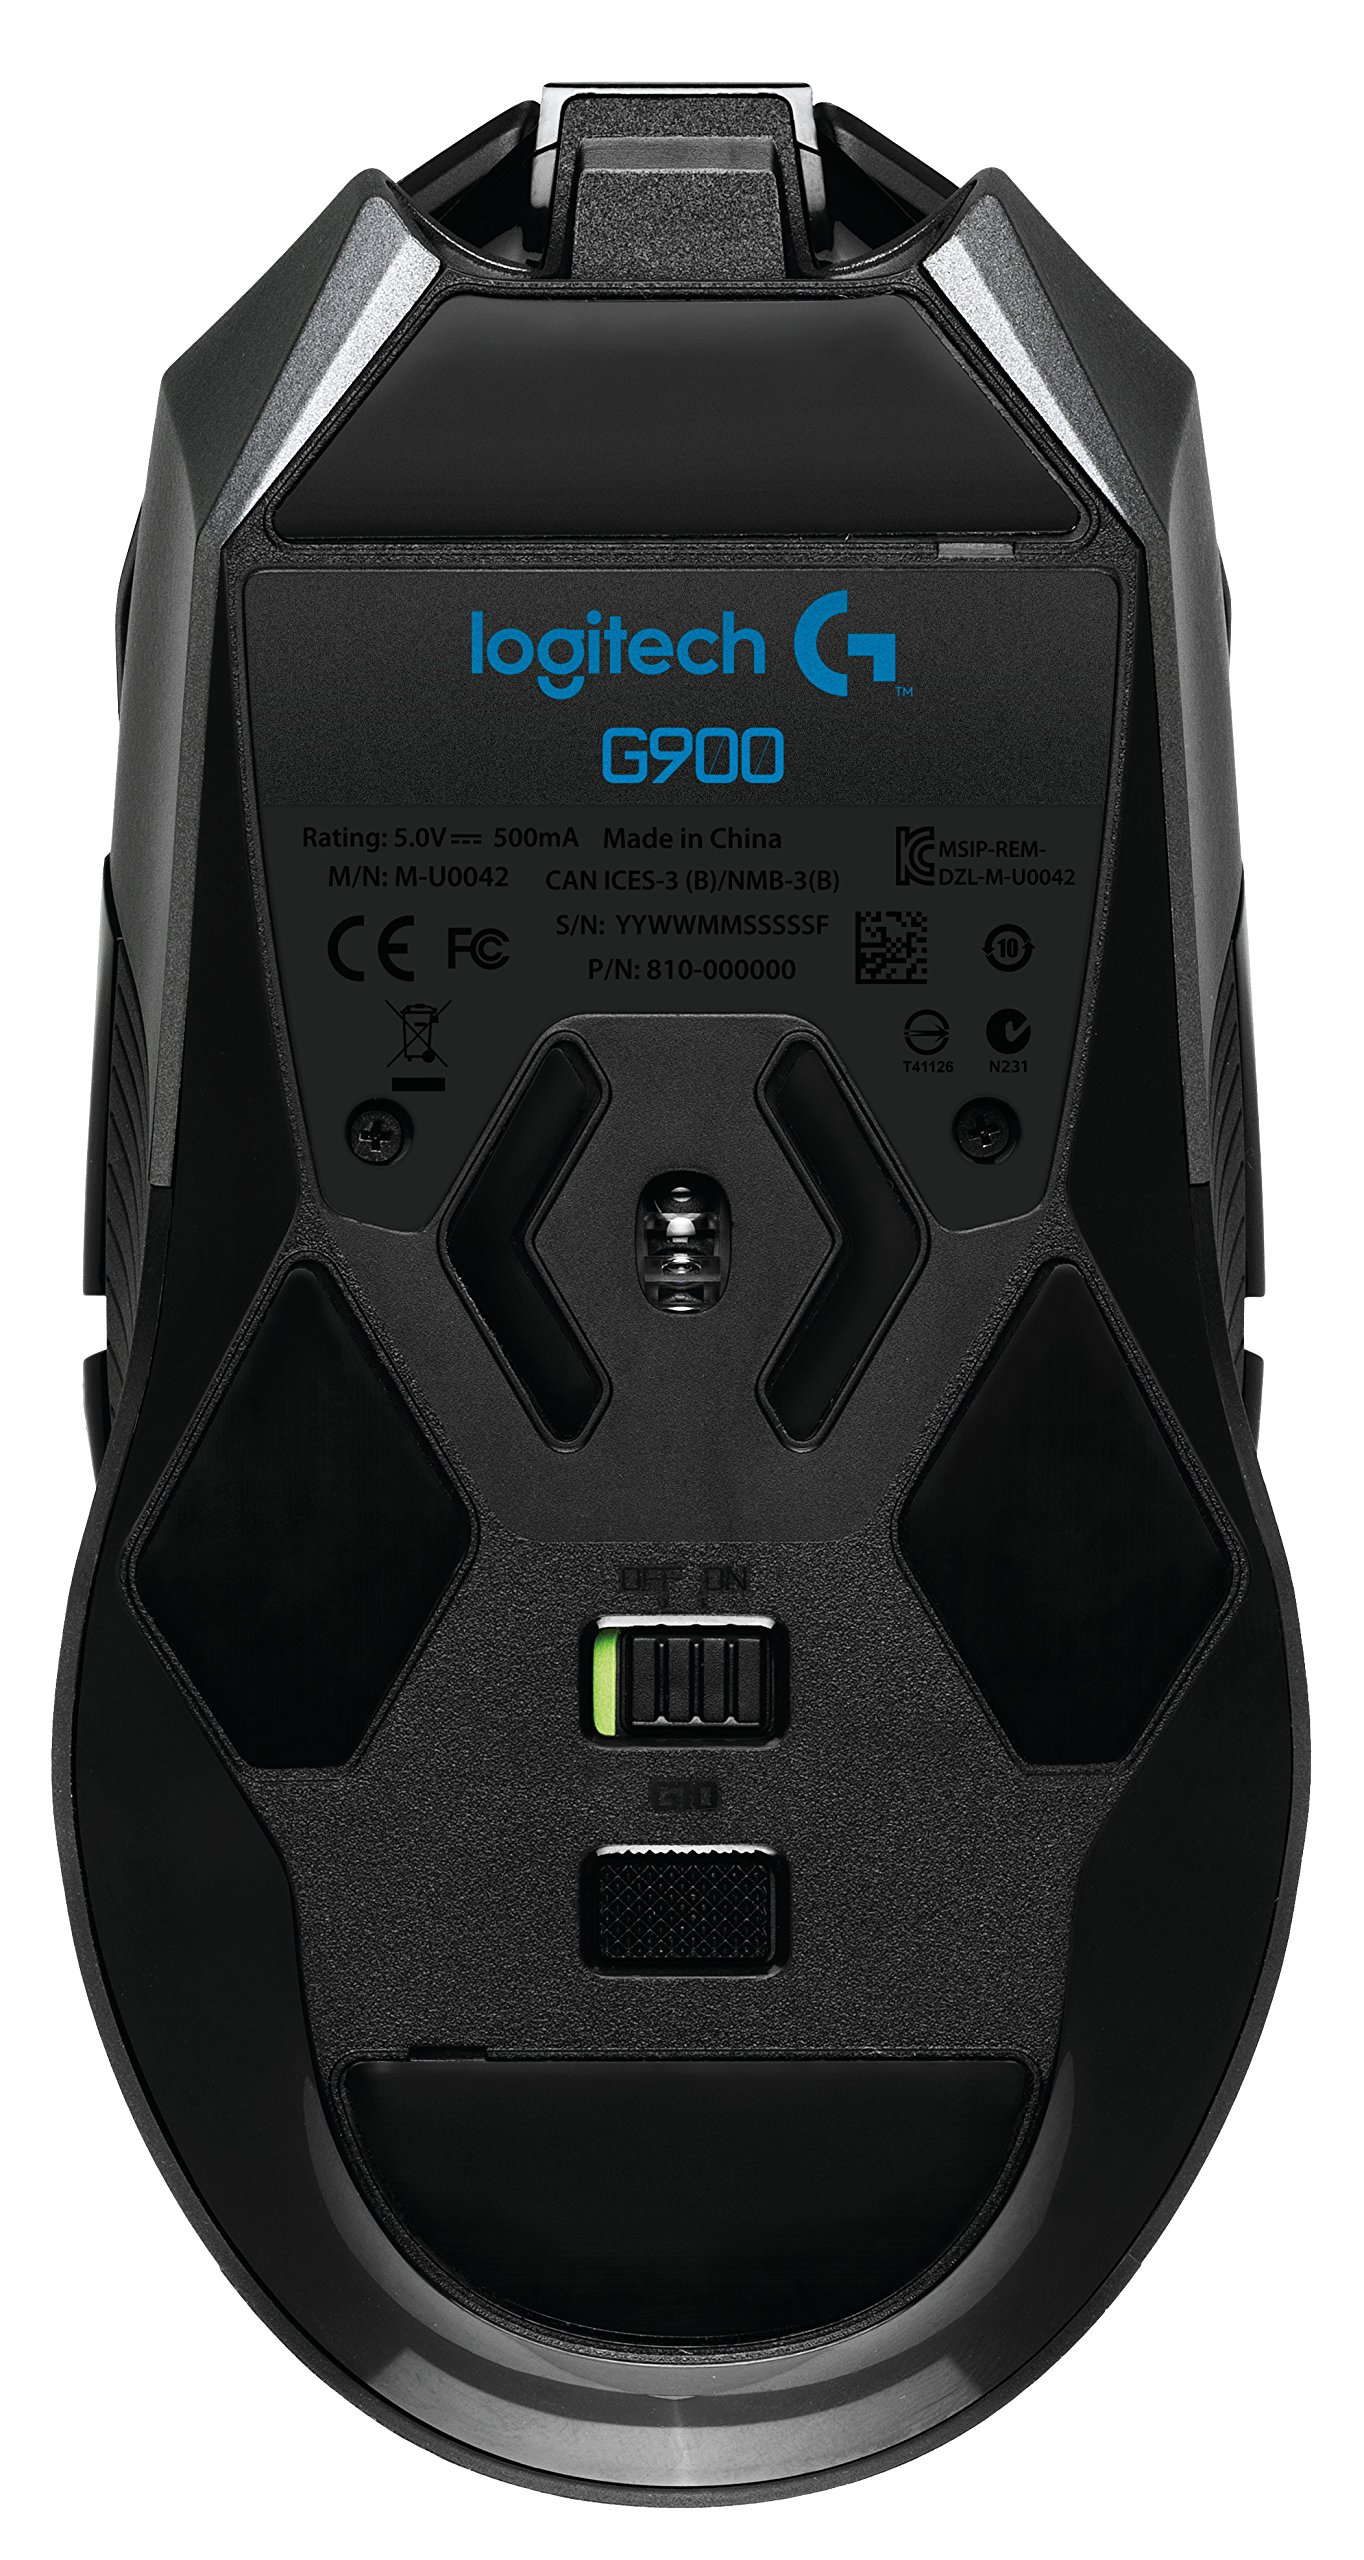 Logitech G900 Chaos Spectrum Professional Grade Wired/Wireless Gaming Mouse, Ambidextrous Mouse by Logitech G